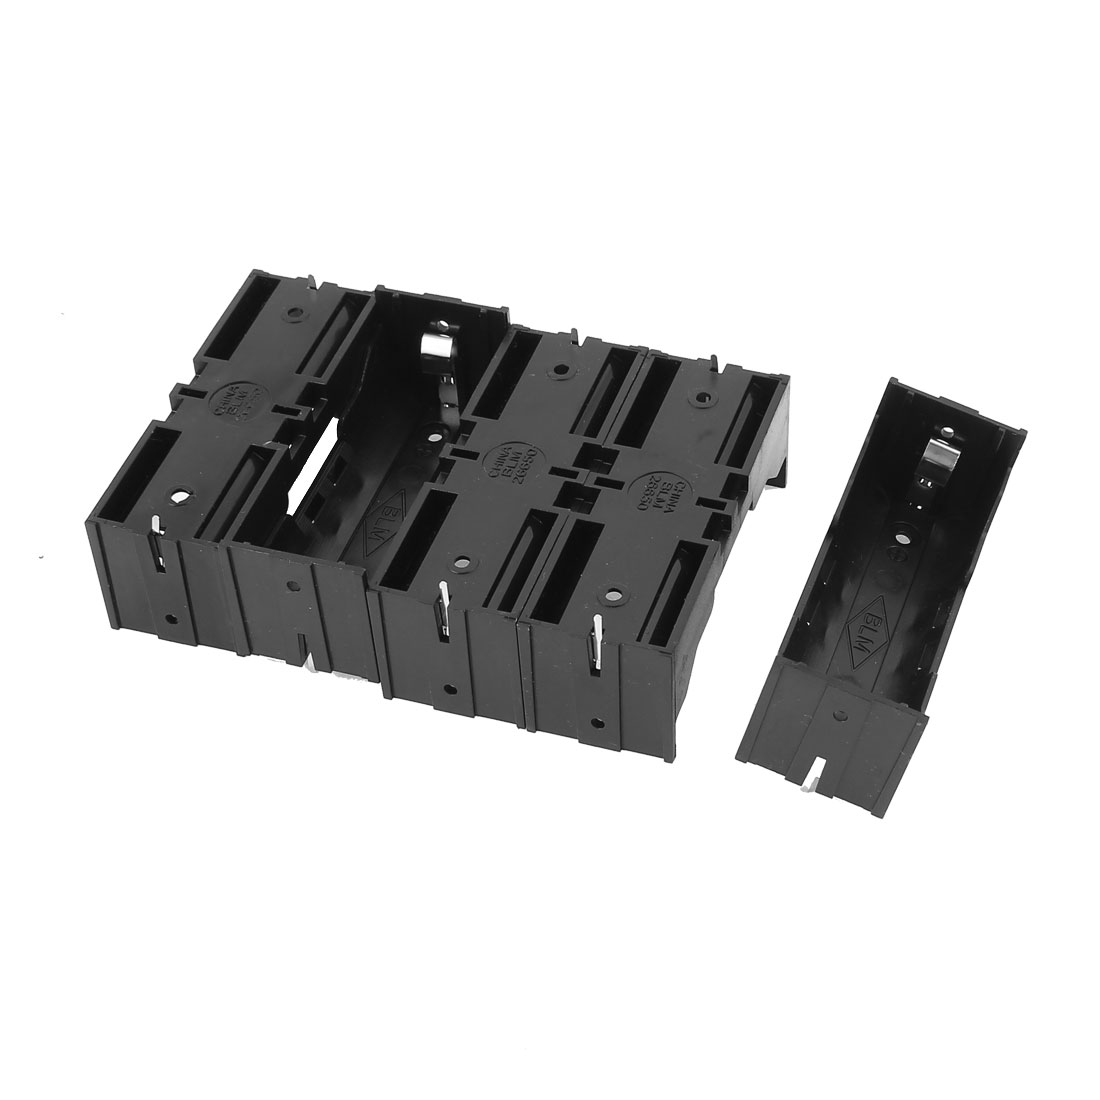 5Pcs Plastic Single 26650 Battery Holder Case Storage Box Black